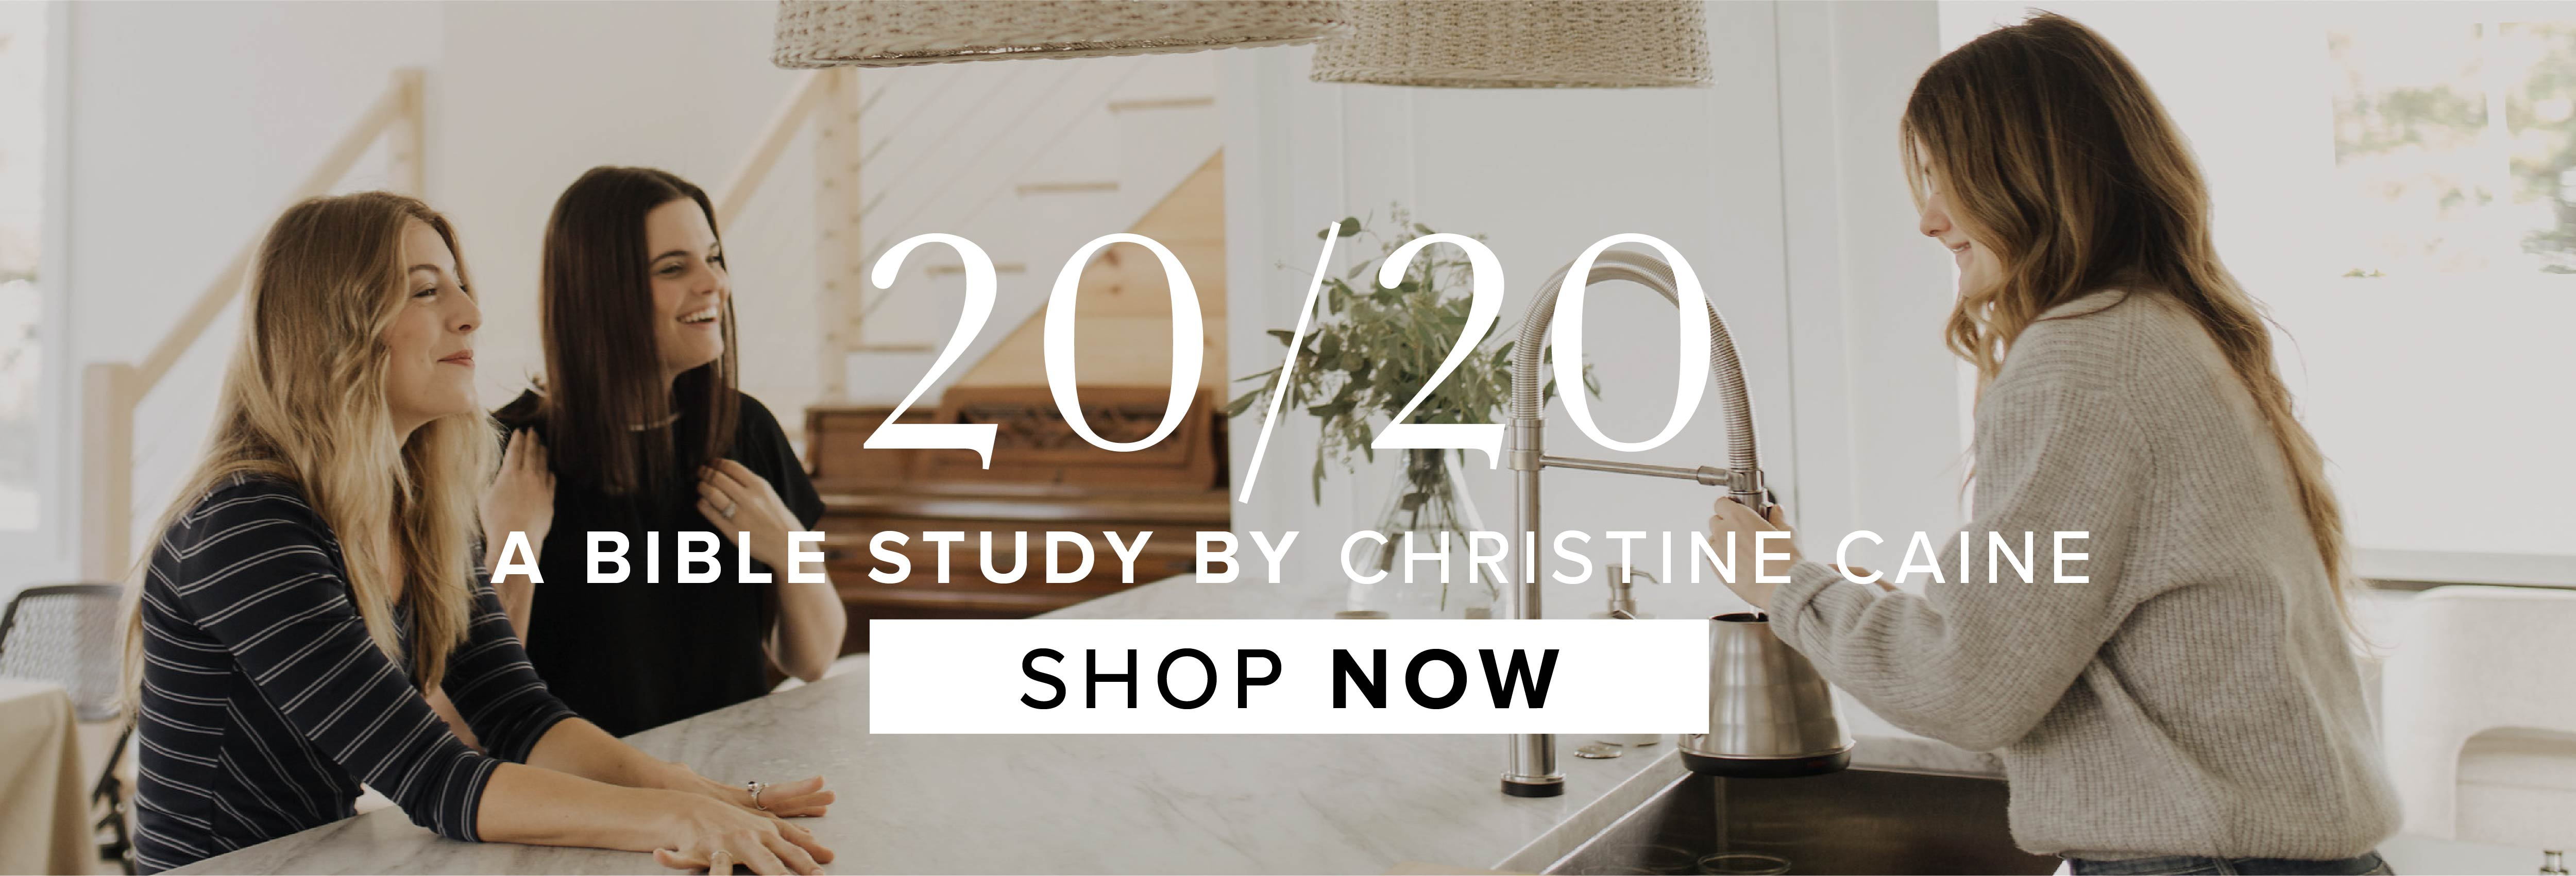 20/20 A Bible Study by Christine Caine